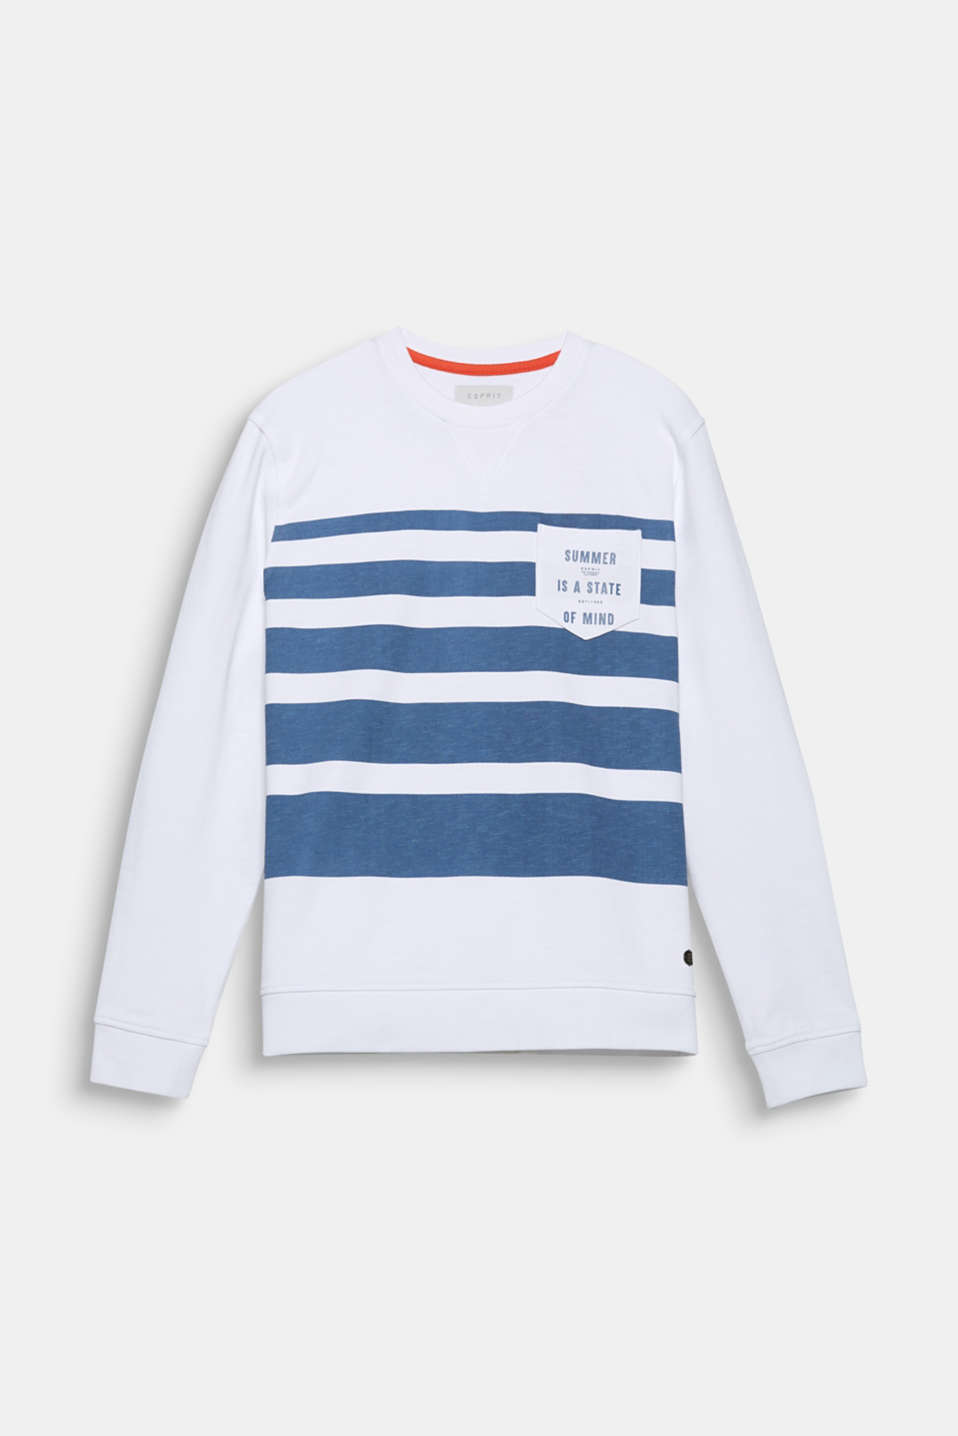 Summer is a state of mind! A print and a statement on this sweatshirt with a distinctive striped print and breast pocket.